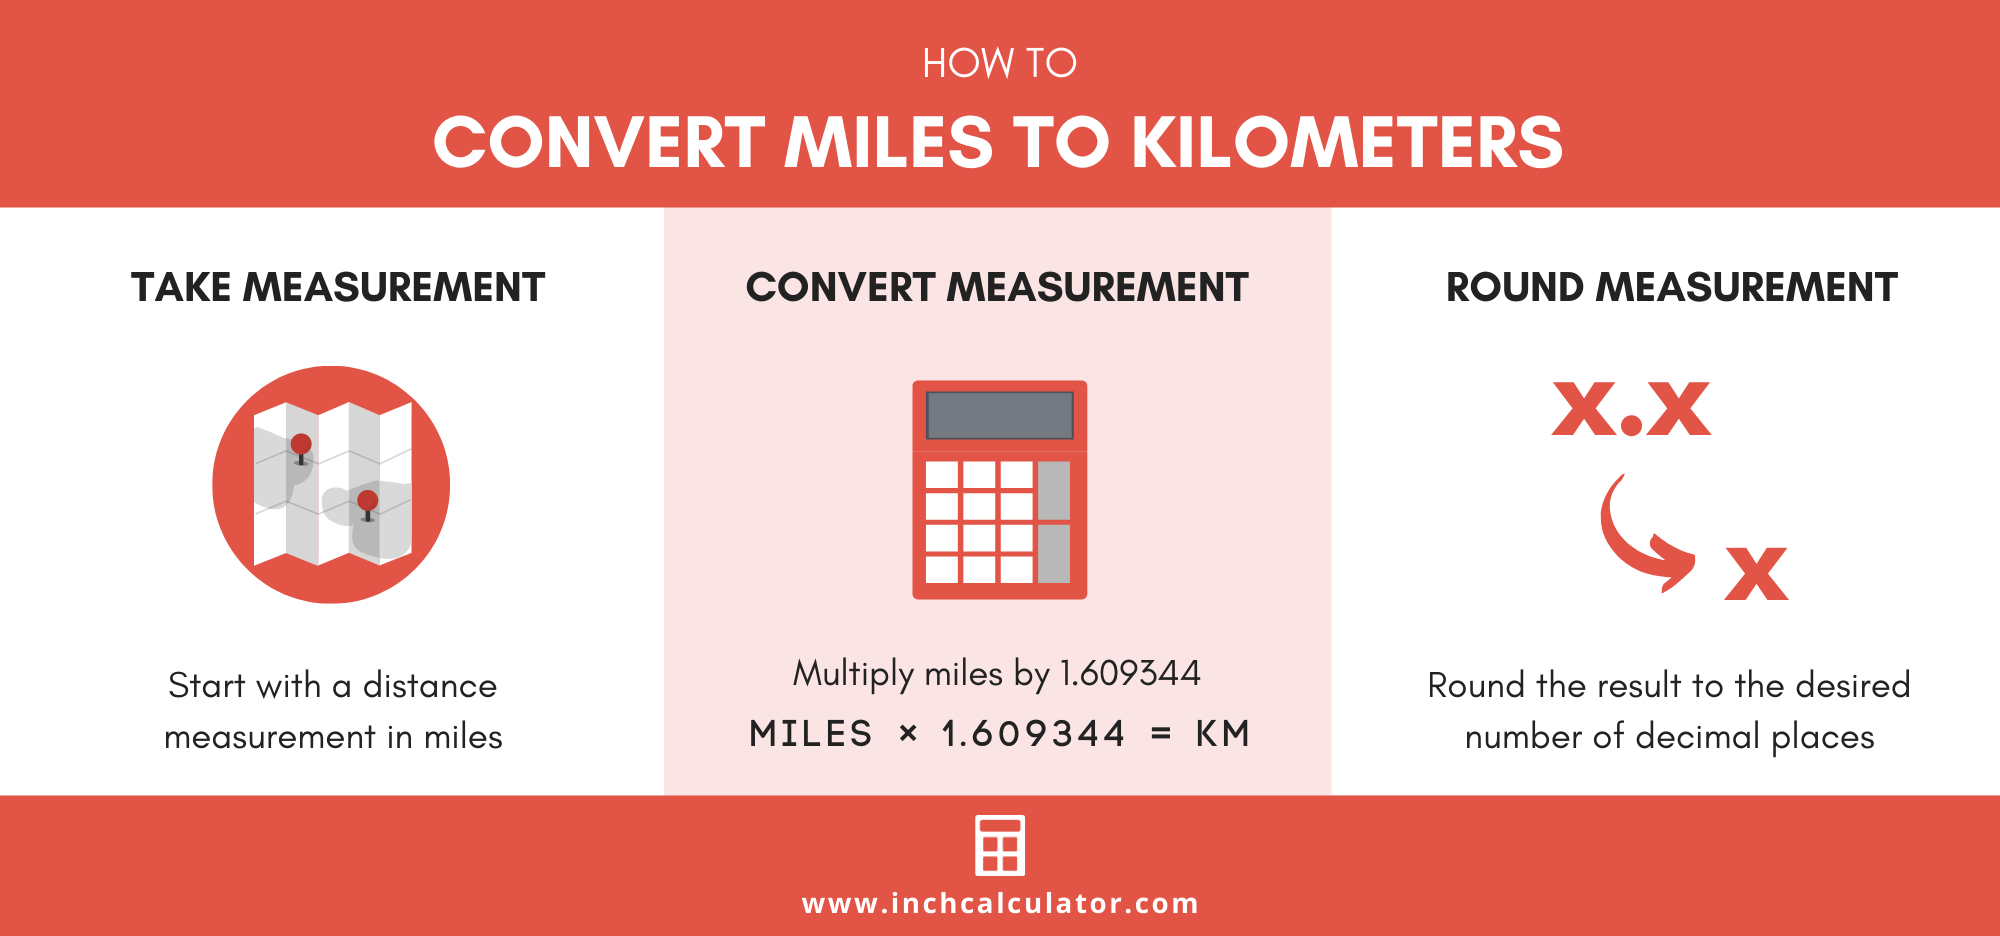 infographic showing how to convert miles to kilometers